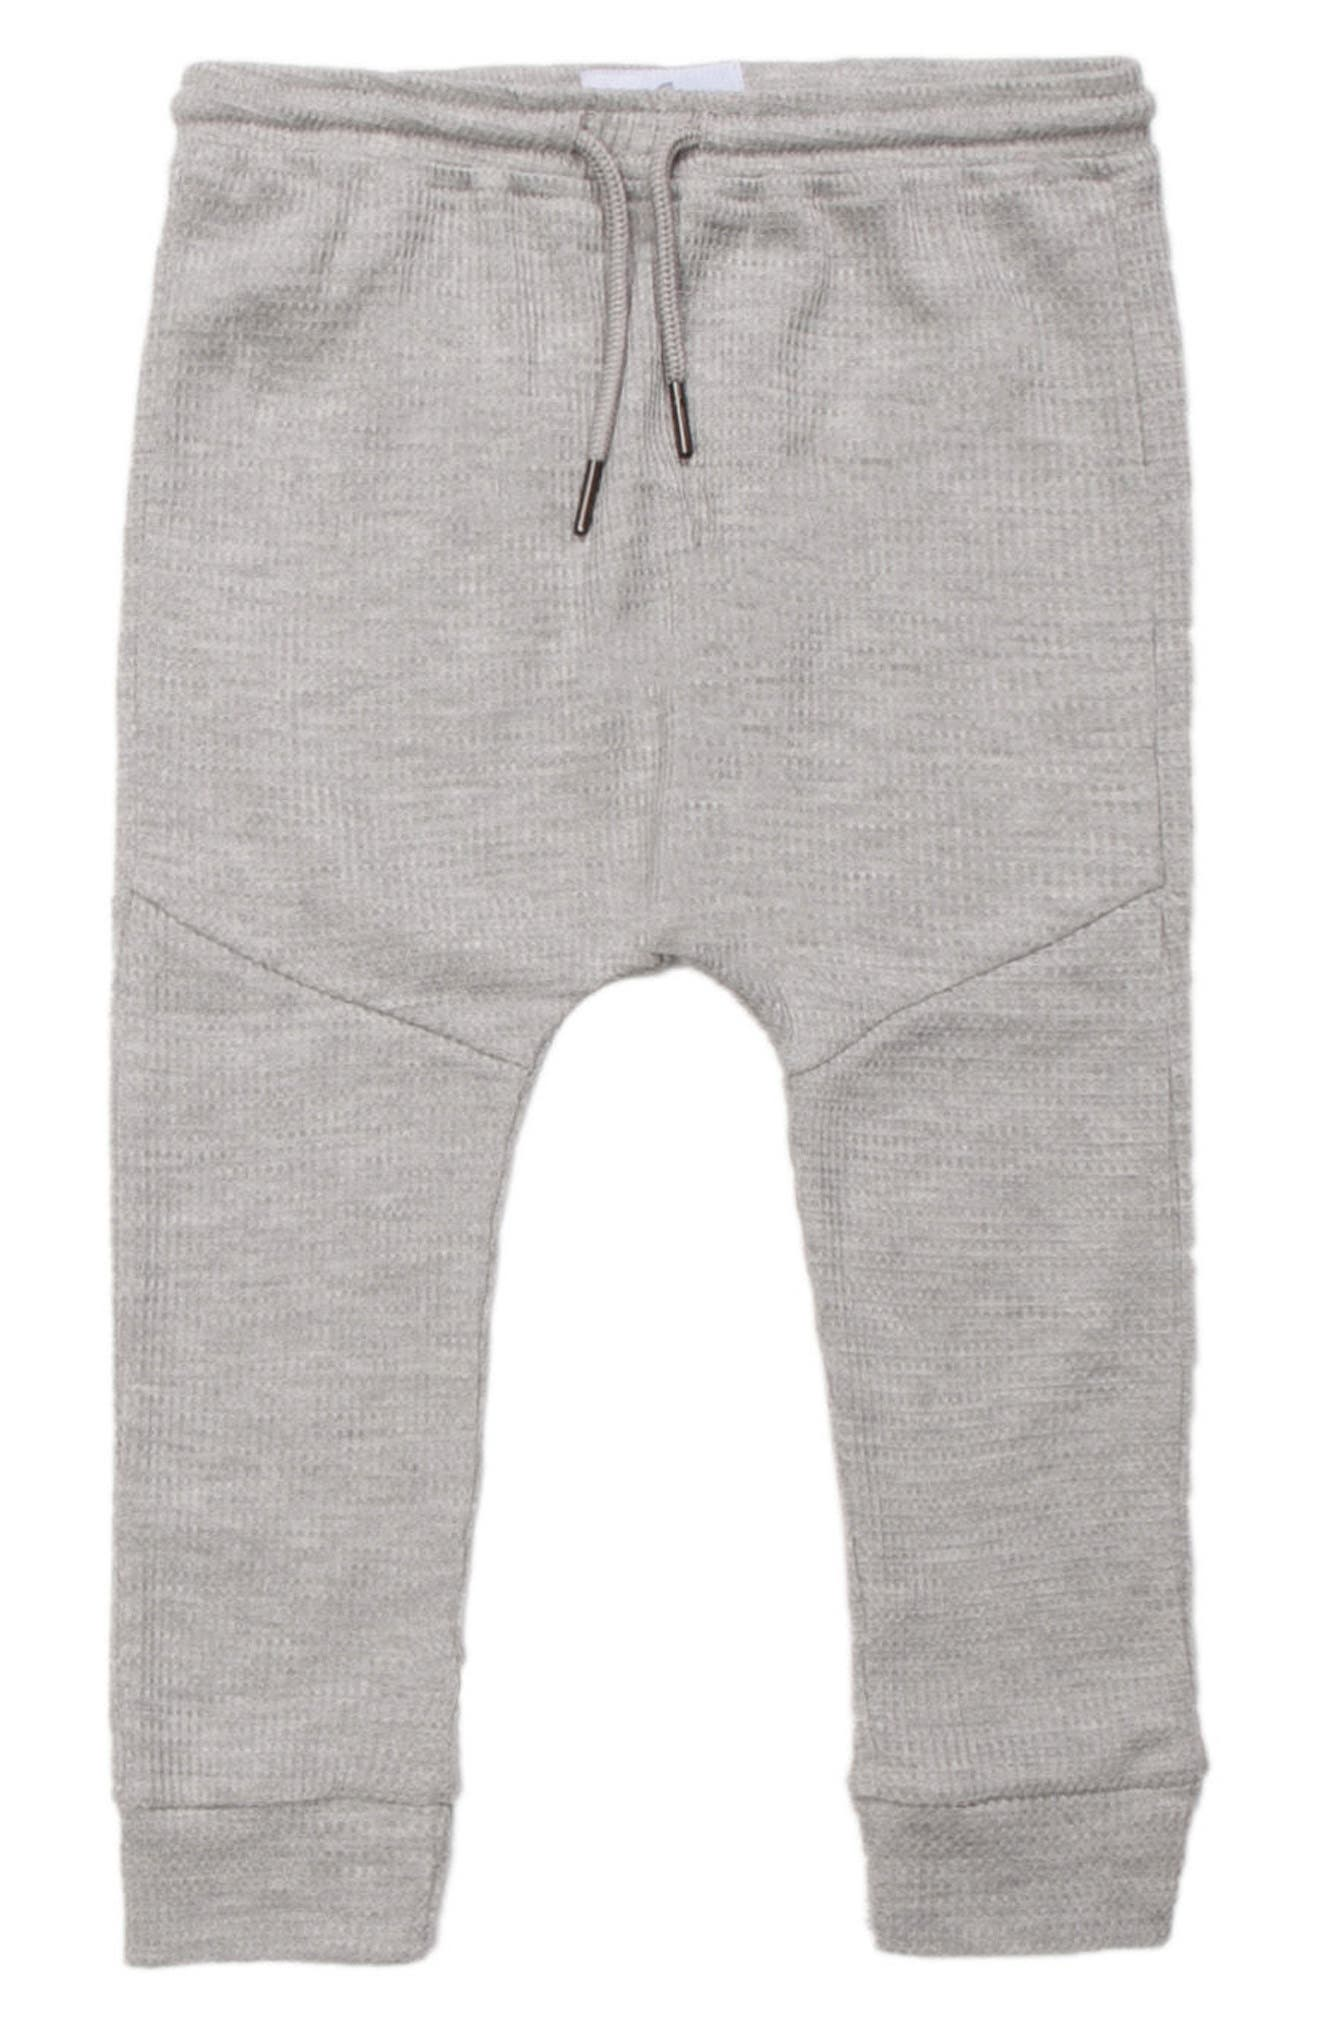 Main Image - Superism Jude Thermal Jogger Pants (Big Boys)